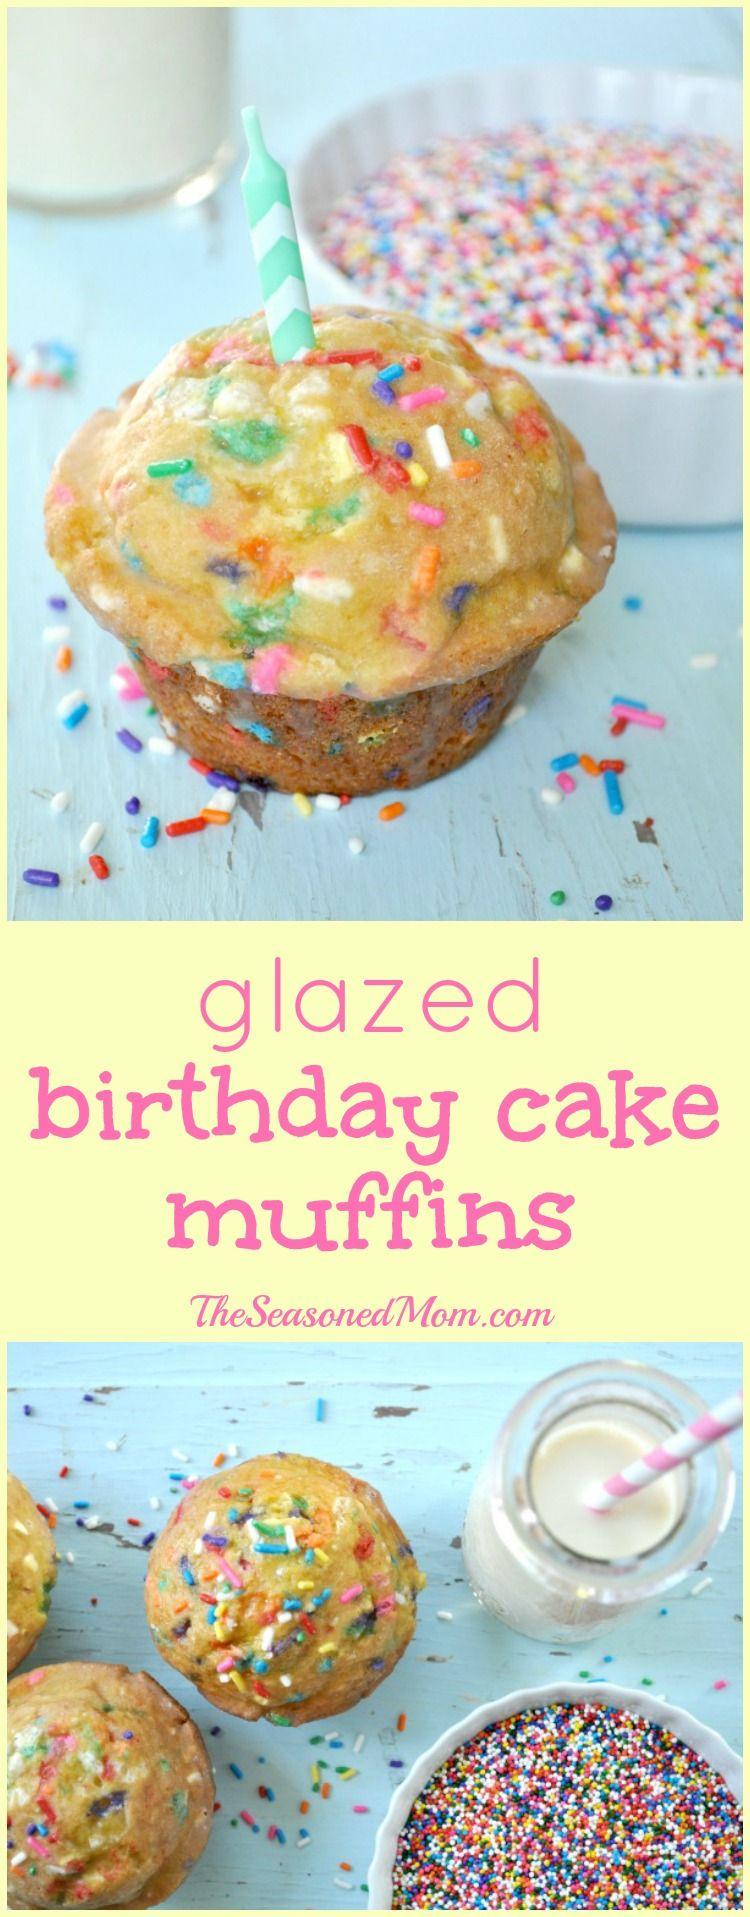 Loaded With Rainbow Sprinkles And Coated A Sweet Glaze These Birthday Cake Muffins Are The Perfect Way To Spoil Your Loved Ones On Special Day